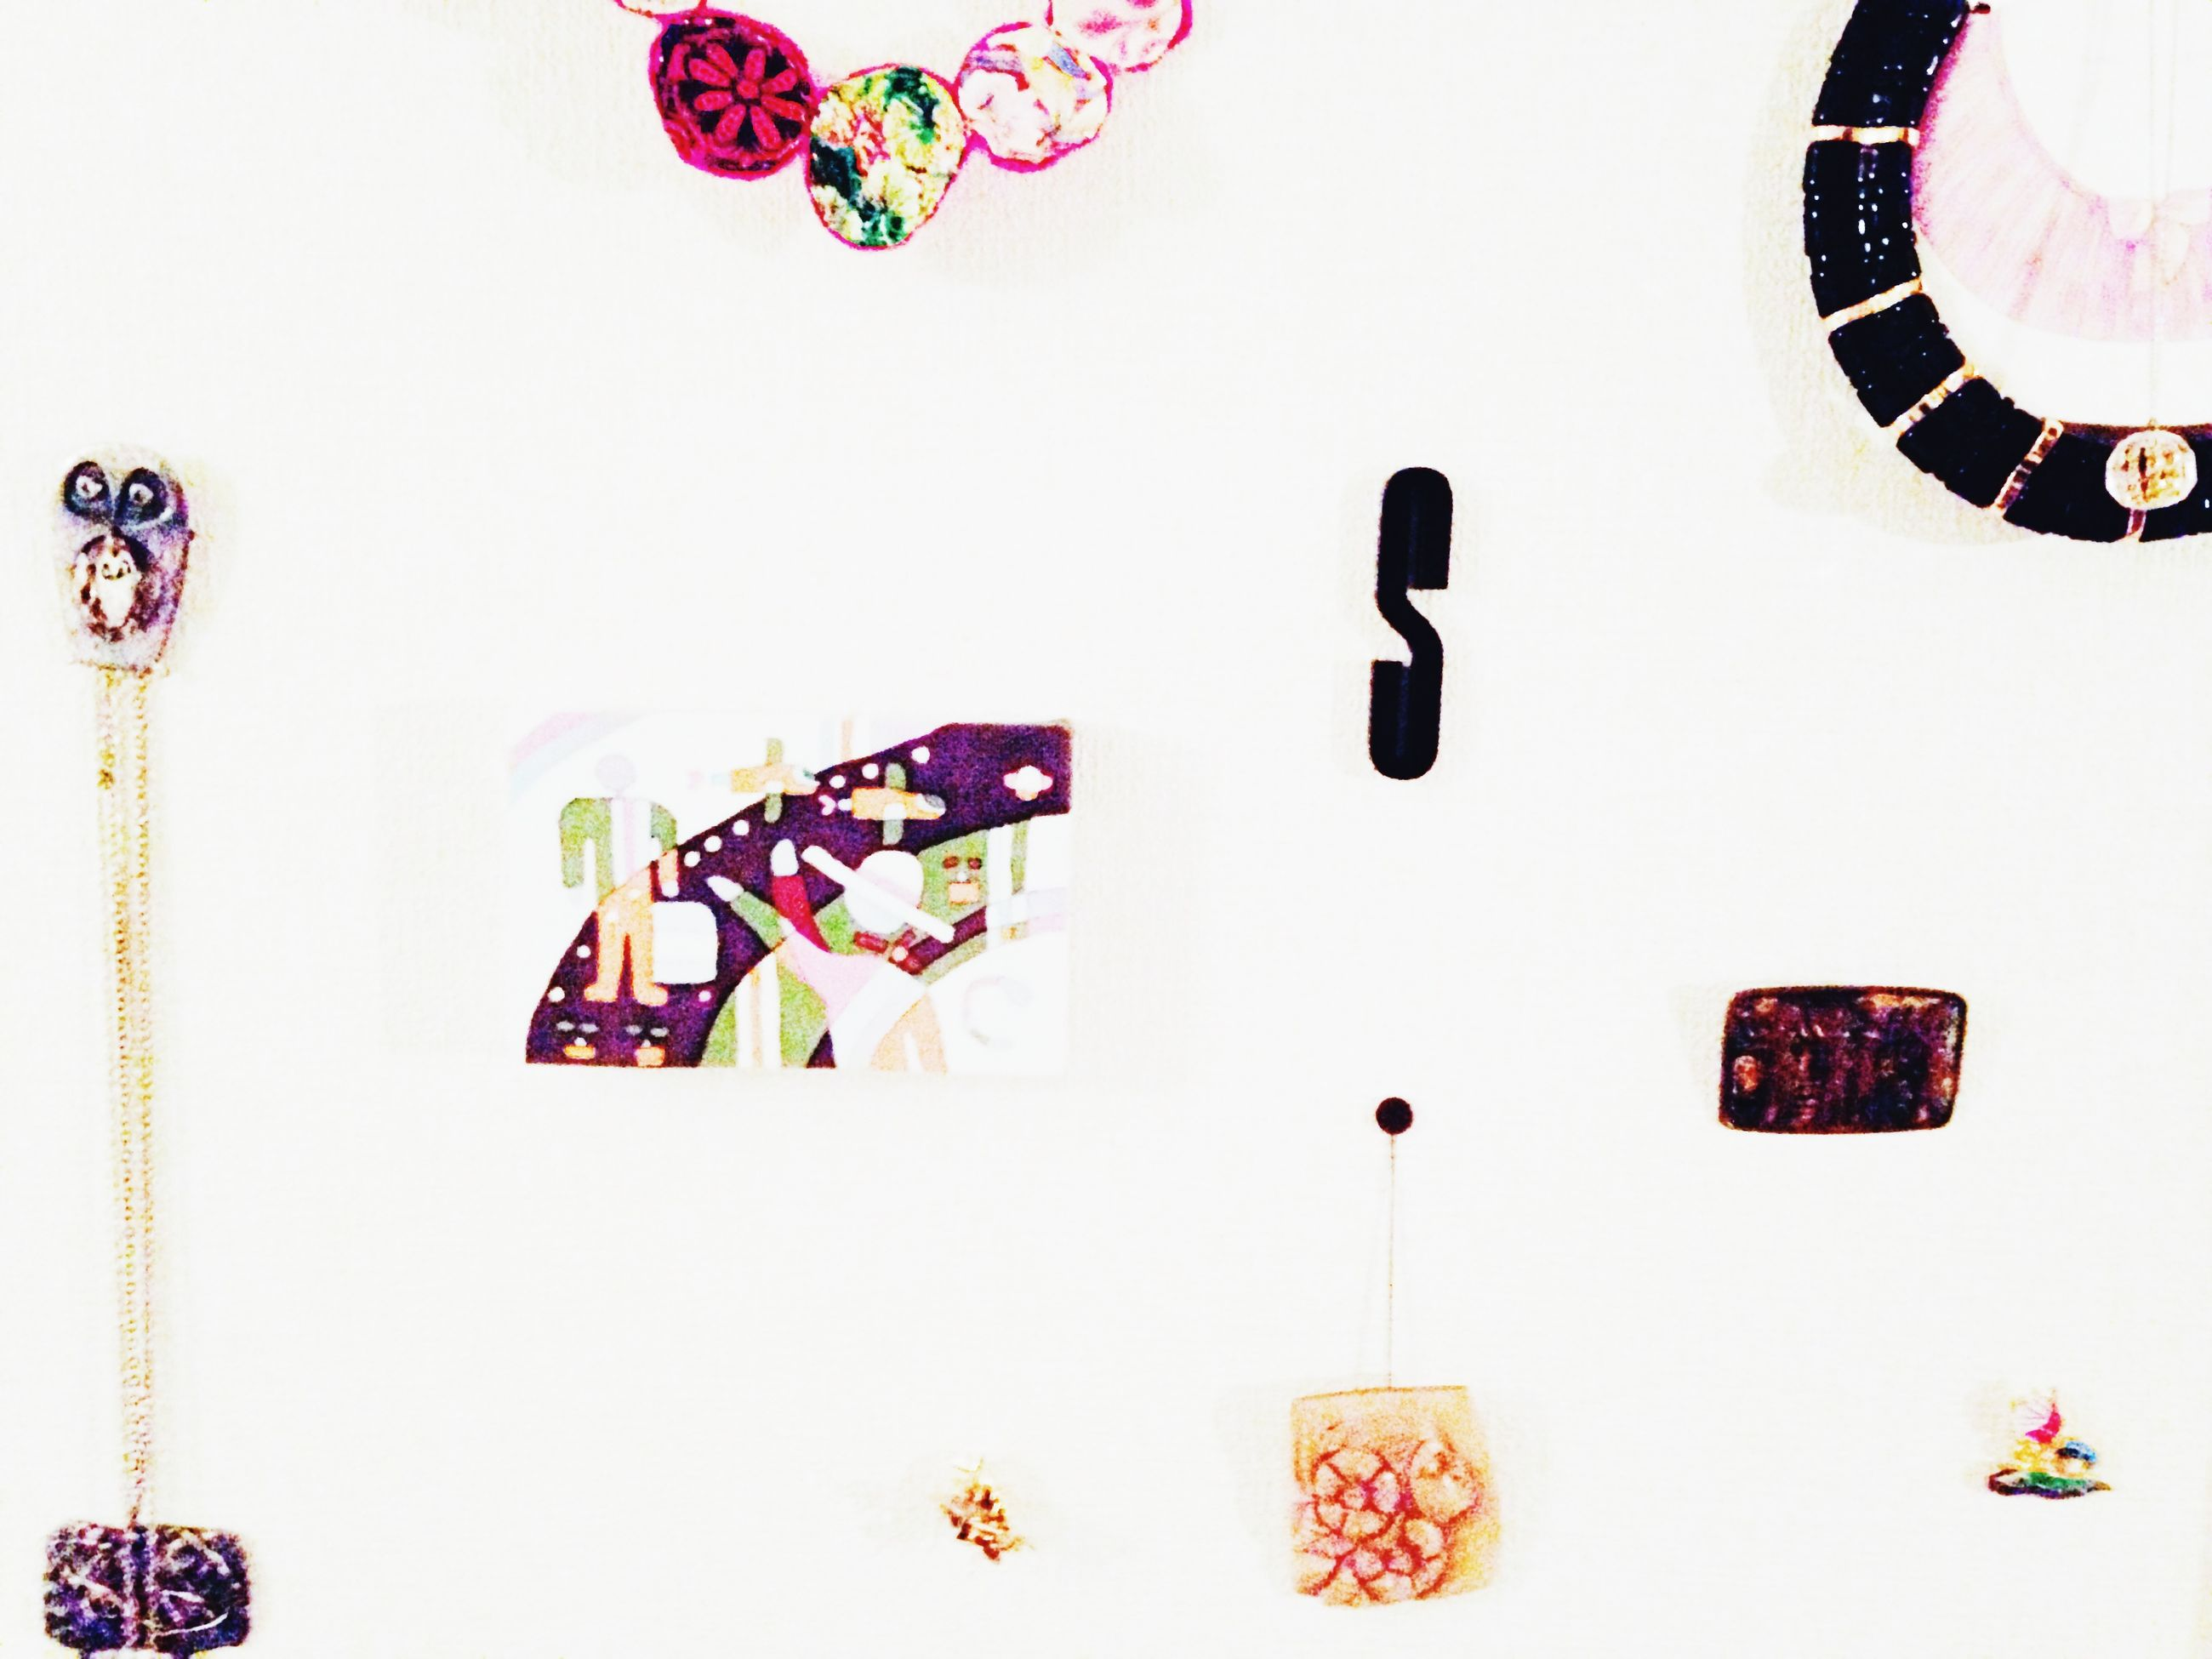 multi colored, art, art and craft, indoors, creativity, text, wall - building feature, variation, copy space, animal representation, decoration, communication, hanging, western script, no people, low angle view, human representation, circle, white color, white background